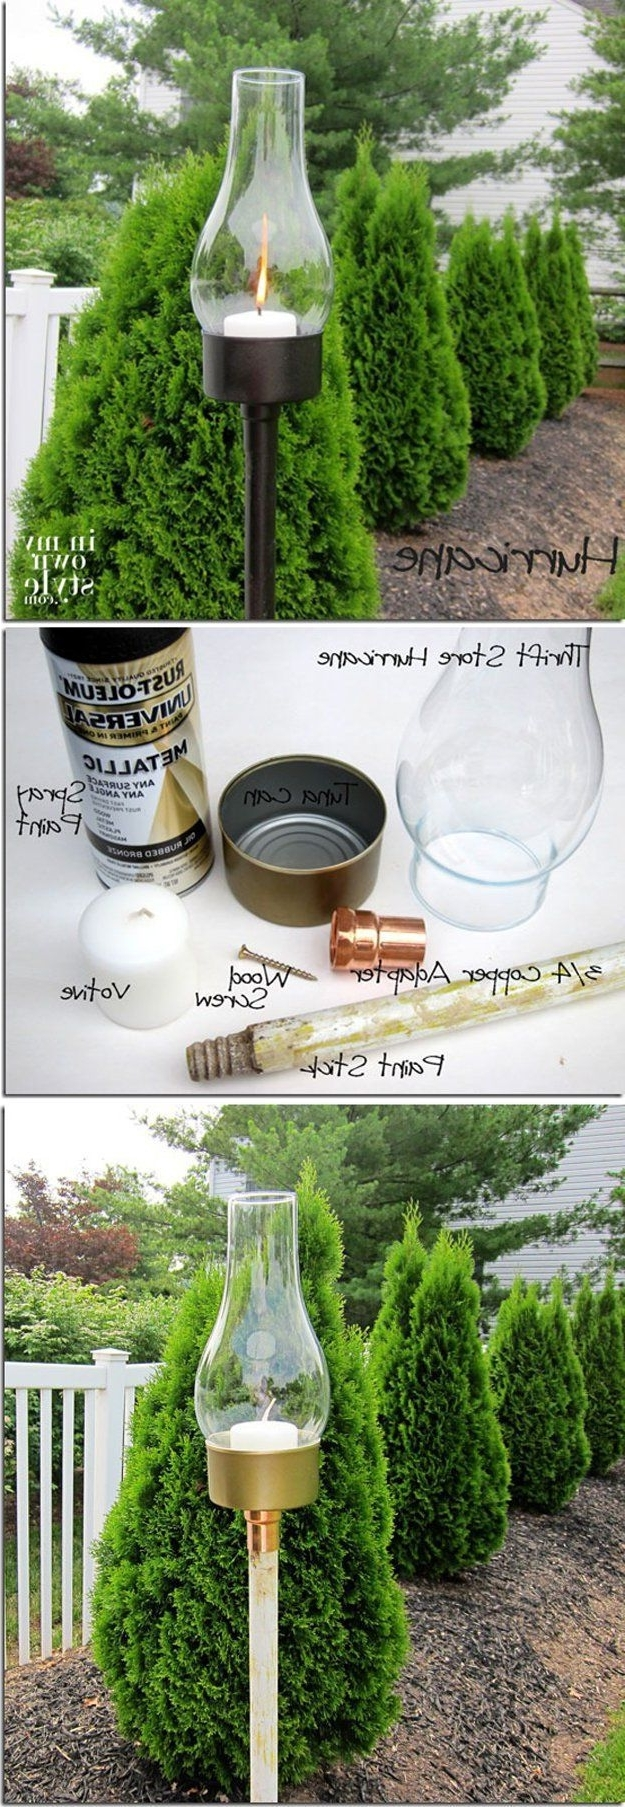 Cheap Diy Outdoor Lantern Lightsdiy Ready At Http://diyready With Most Up To Date Inexpensive Outdoor Lanterns (View 8 of 20)